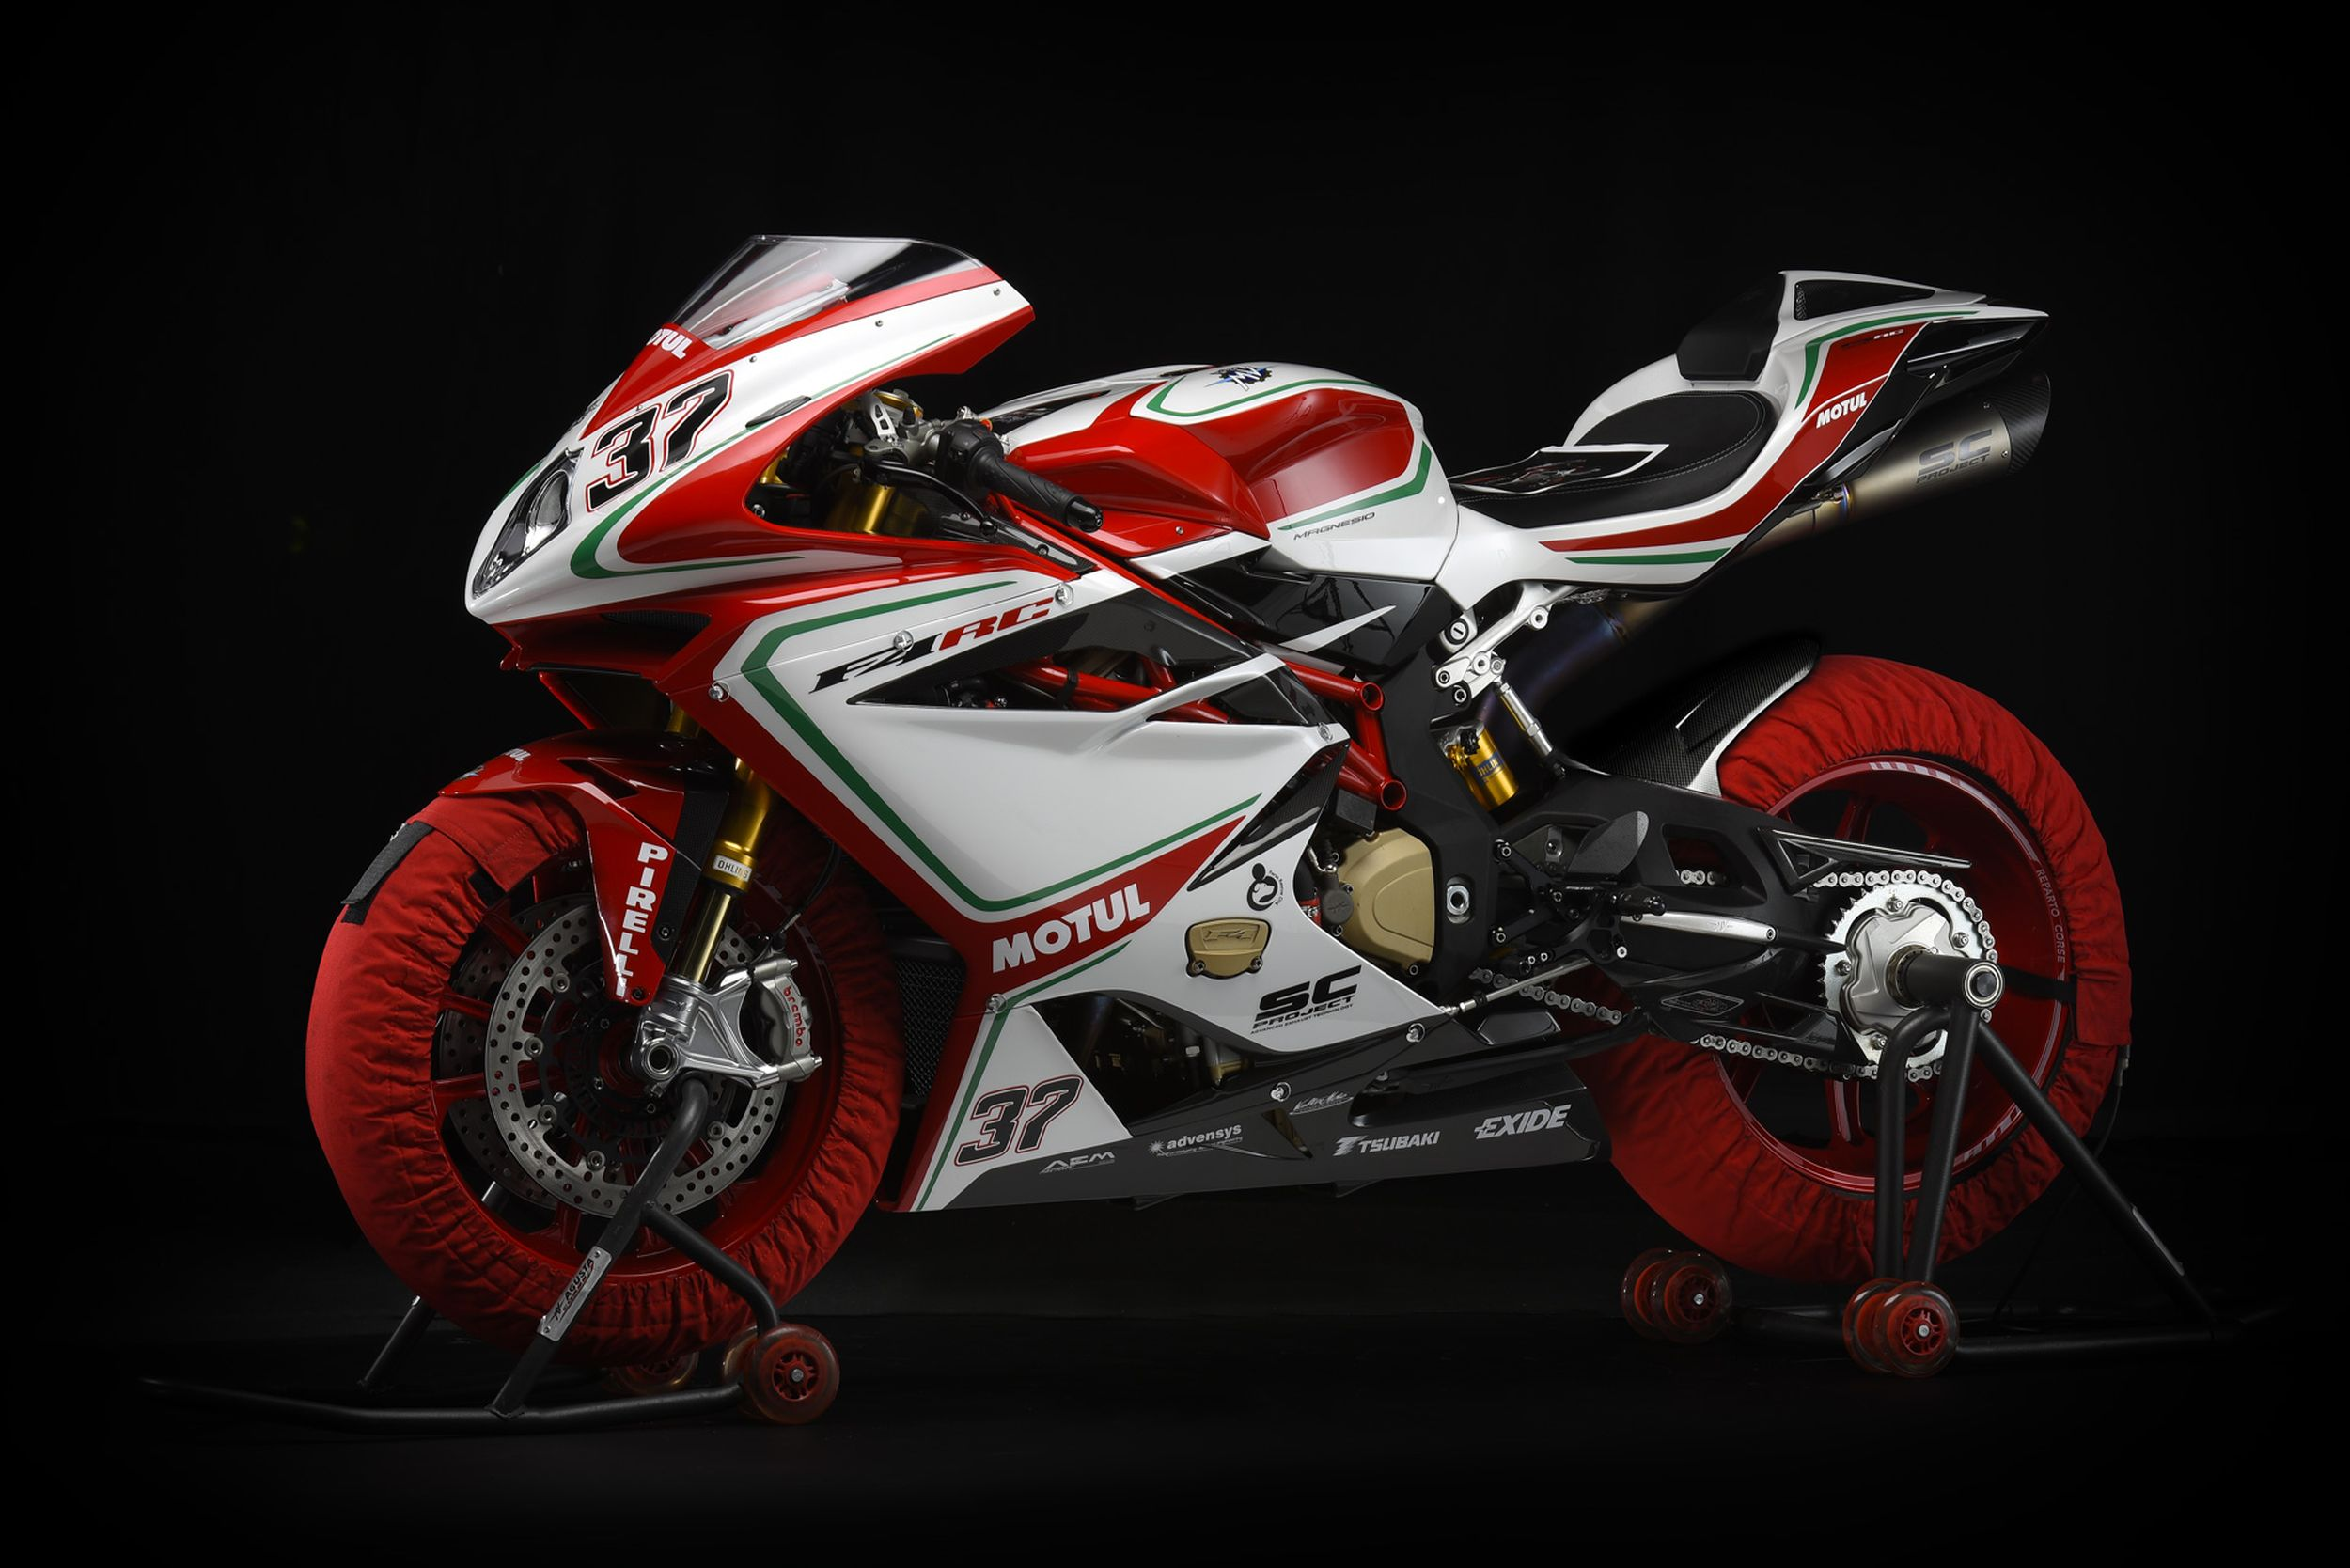 mv agusta f4 rc alle technischen daten zum modell f4 rc. Black Bedroom Furniture Sets. Home Design Ideas